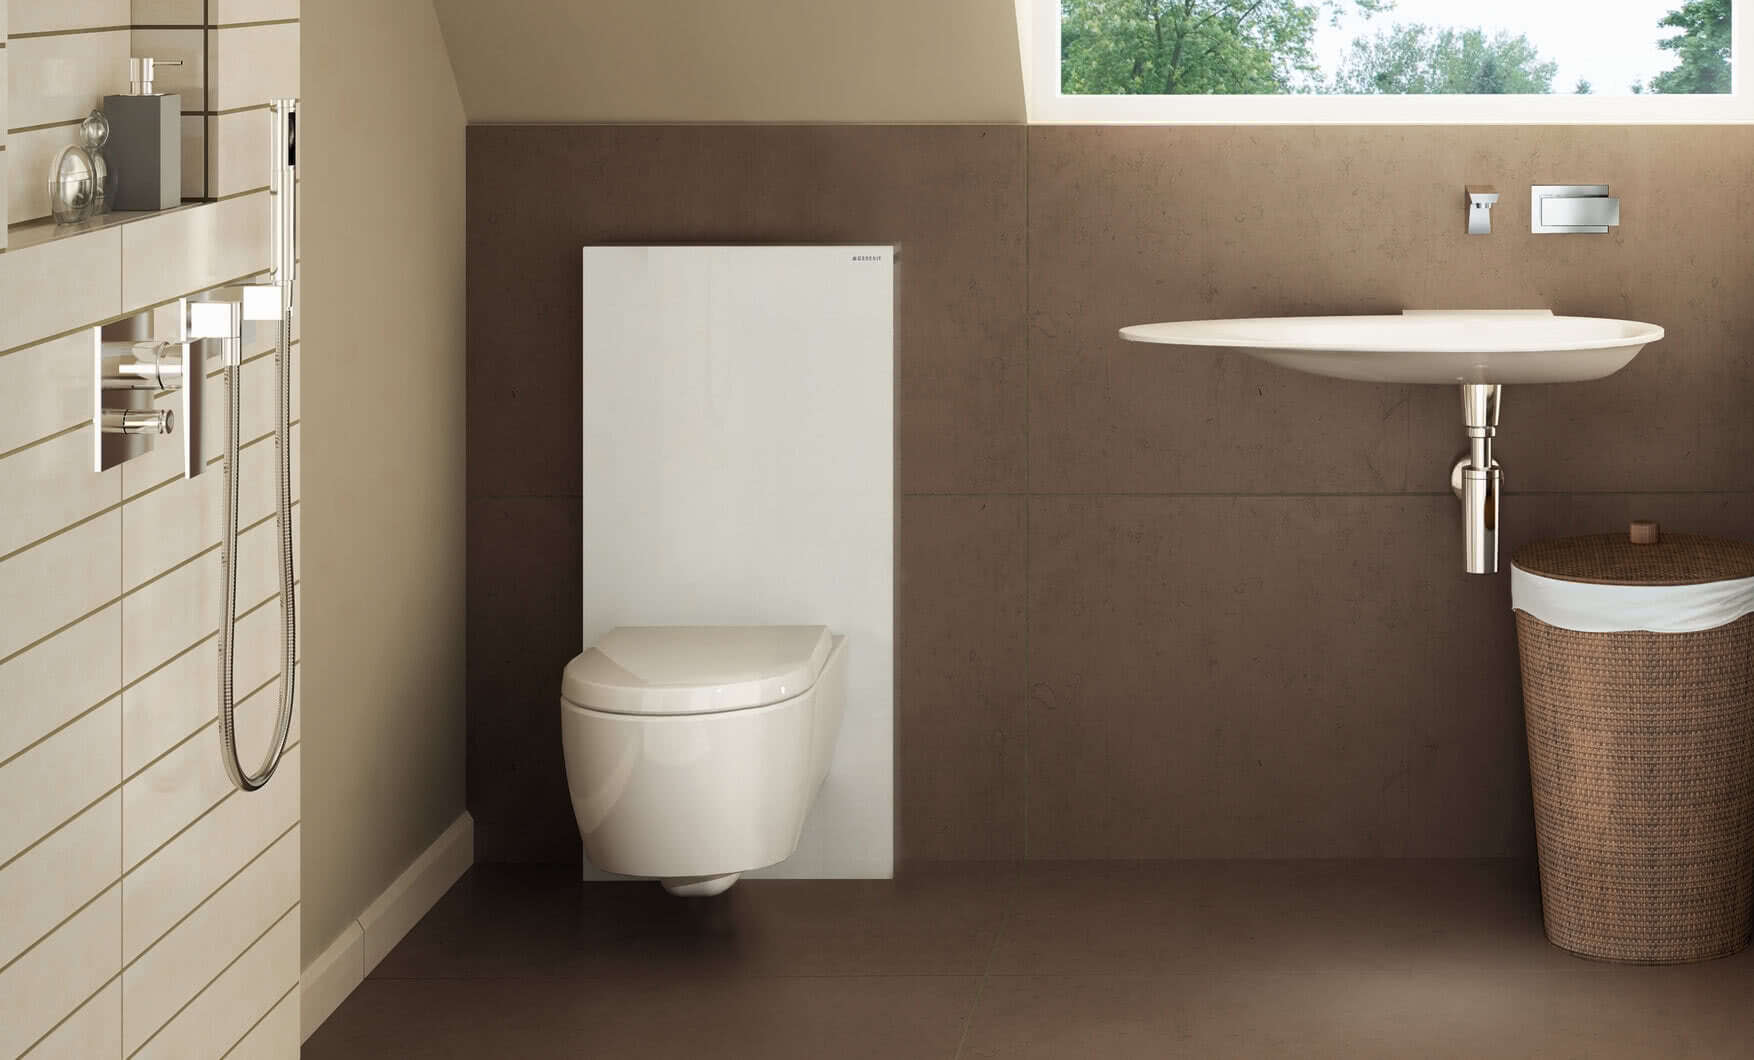 Geberit duofix frame for wall hung wc h82 with omega cistern 12cm - Geberit Monolith Wc Frame Cistern For Wall Hung Wcs White